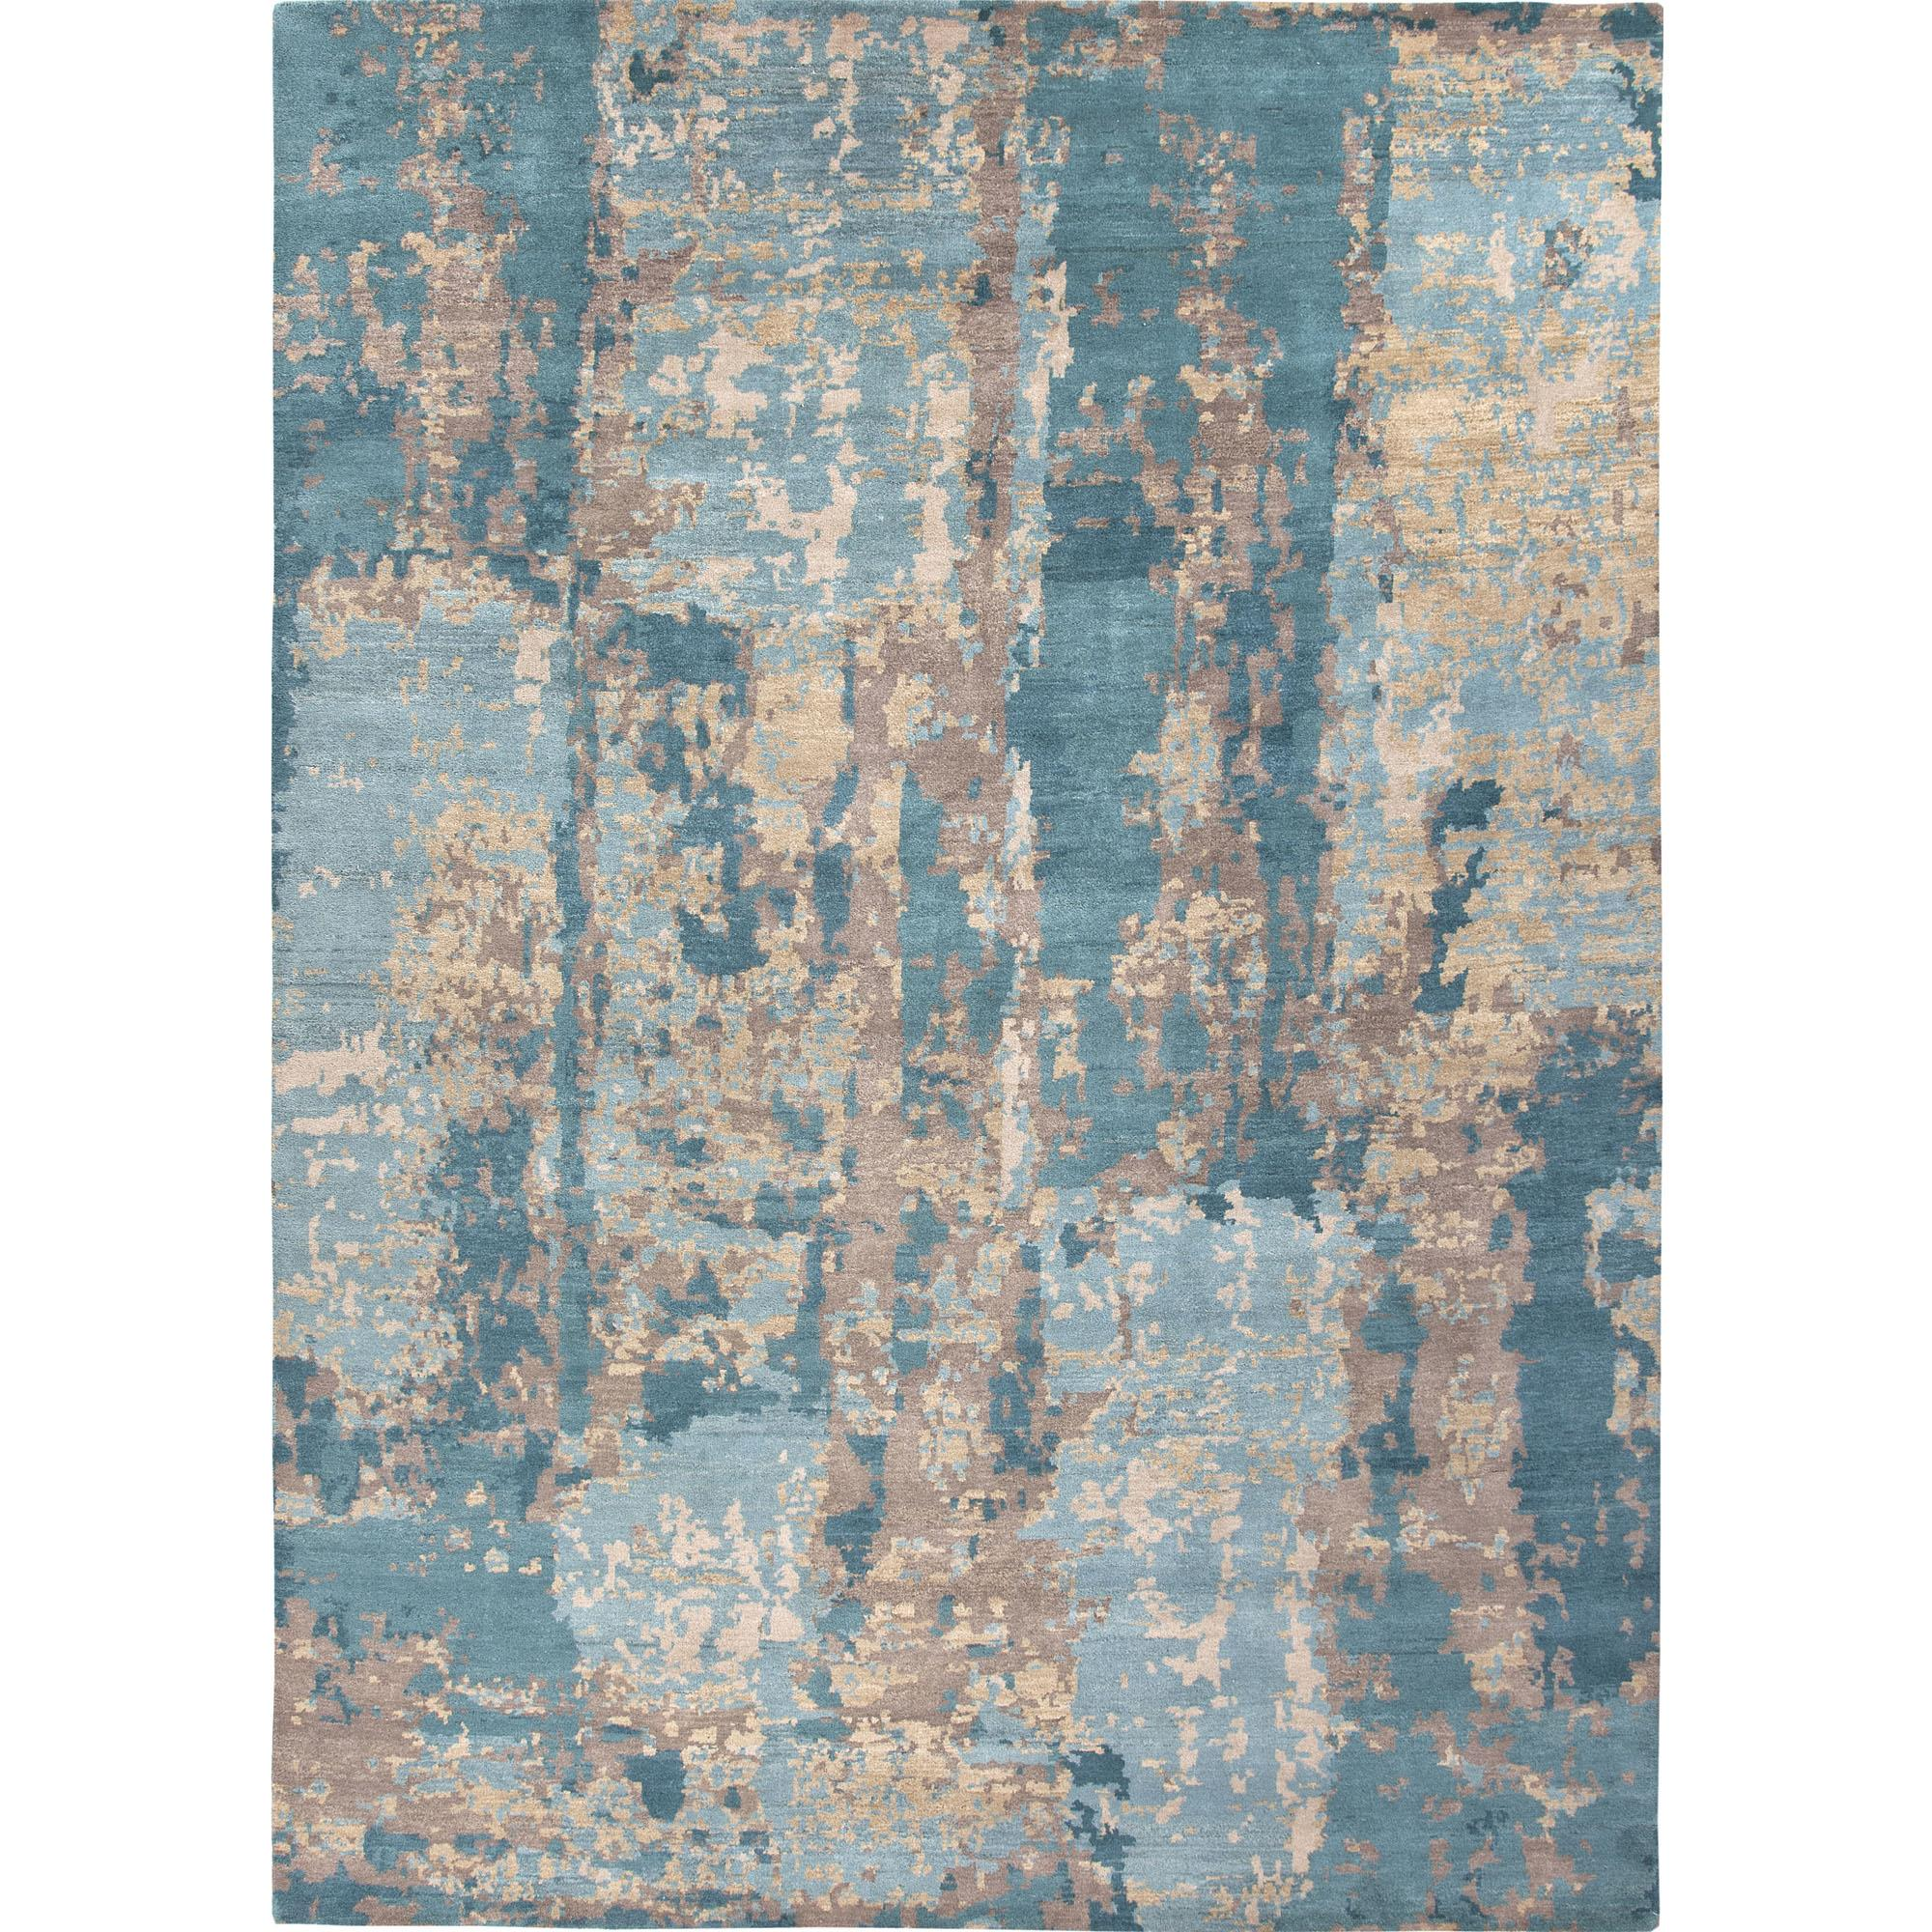 JAIPUR Rugs Connextion By Jenny Jones-global 2 x 3 Rug - Item Number: RUG101028